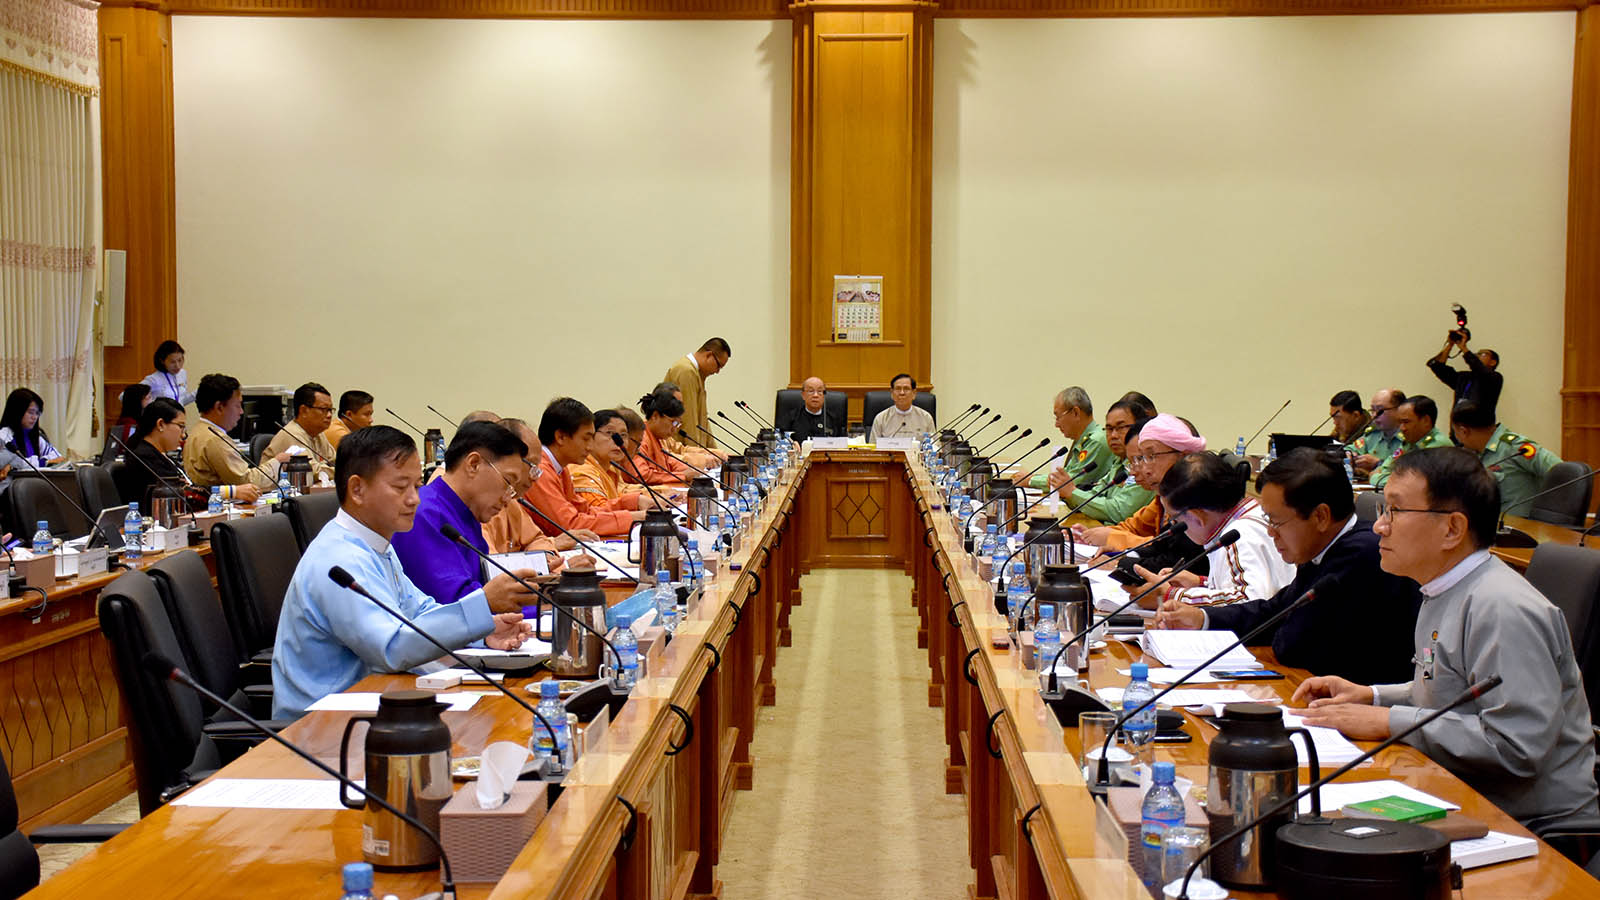 The meeting 69/2019 of the Joint Committee on Amending the 2008 Constitution is in progress at Pyidaungsu Hluttaw Building D in Nay Pyi Taw on 16 December. Photo: MNA